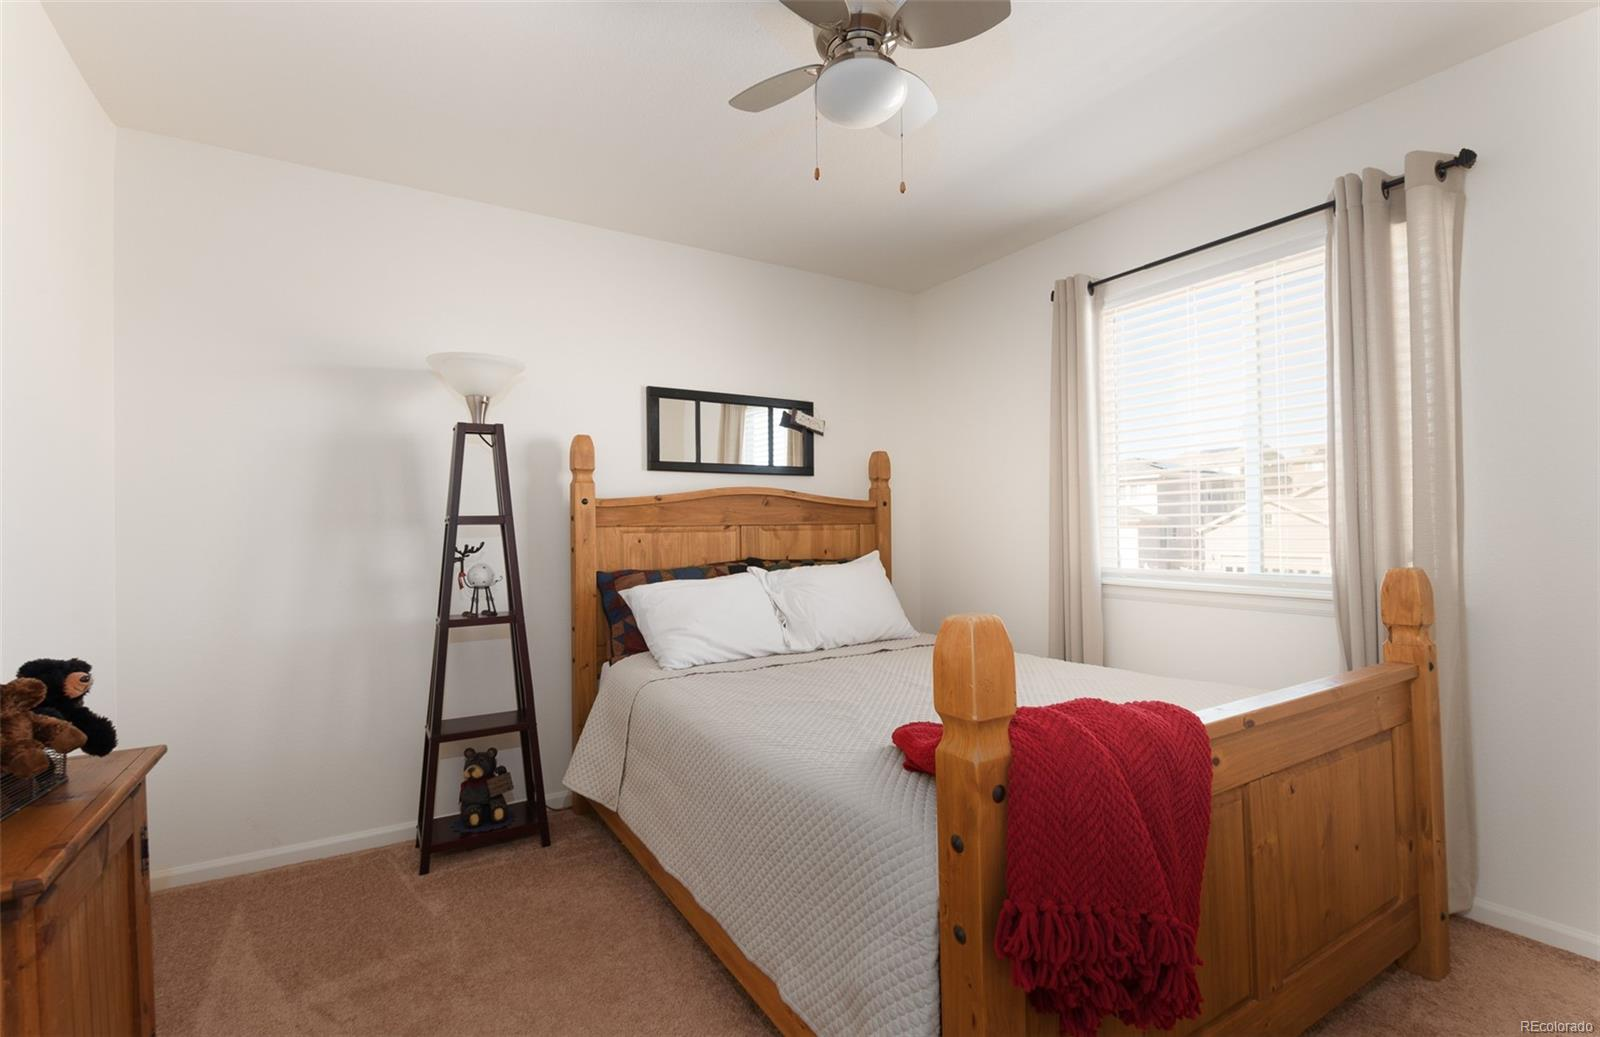 Second bedroom located on upper level.